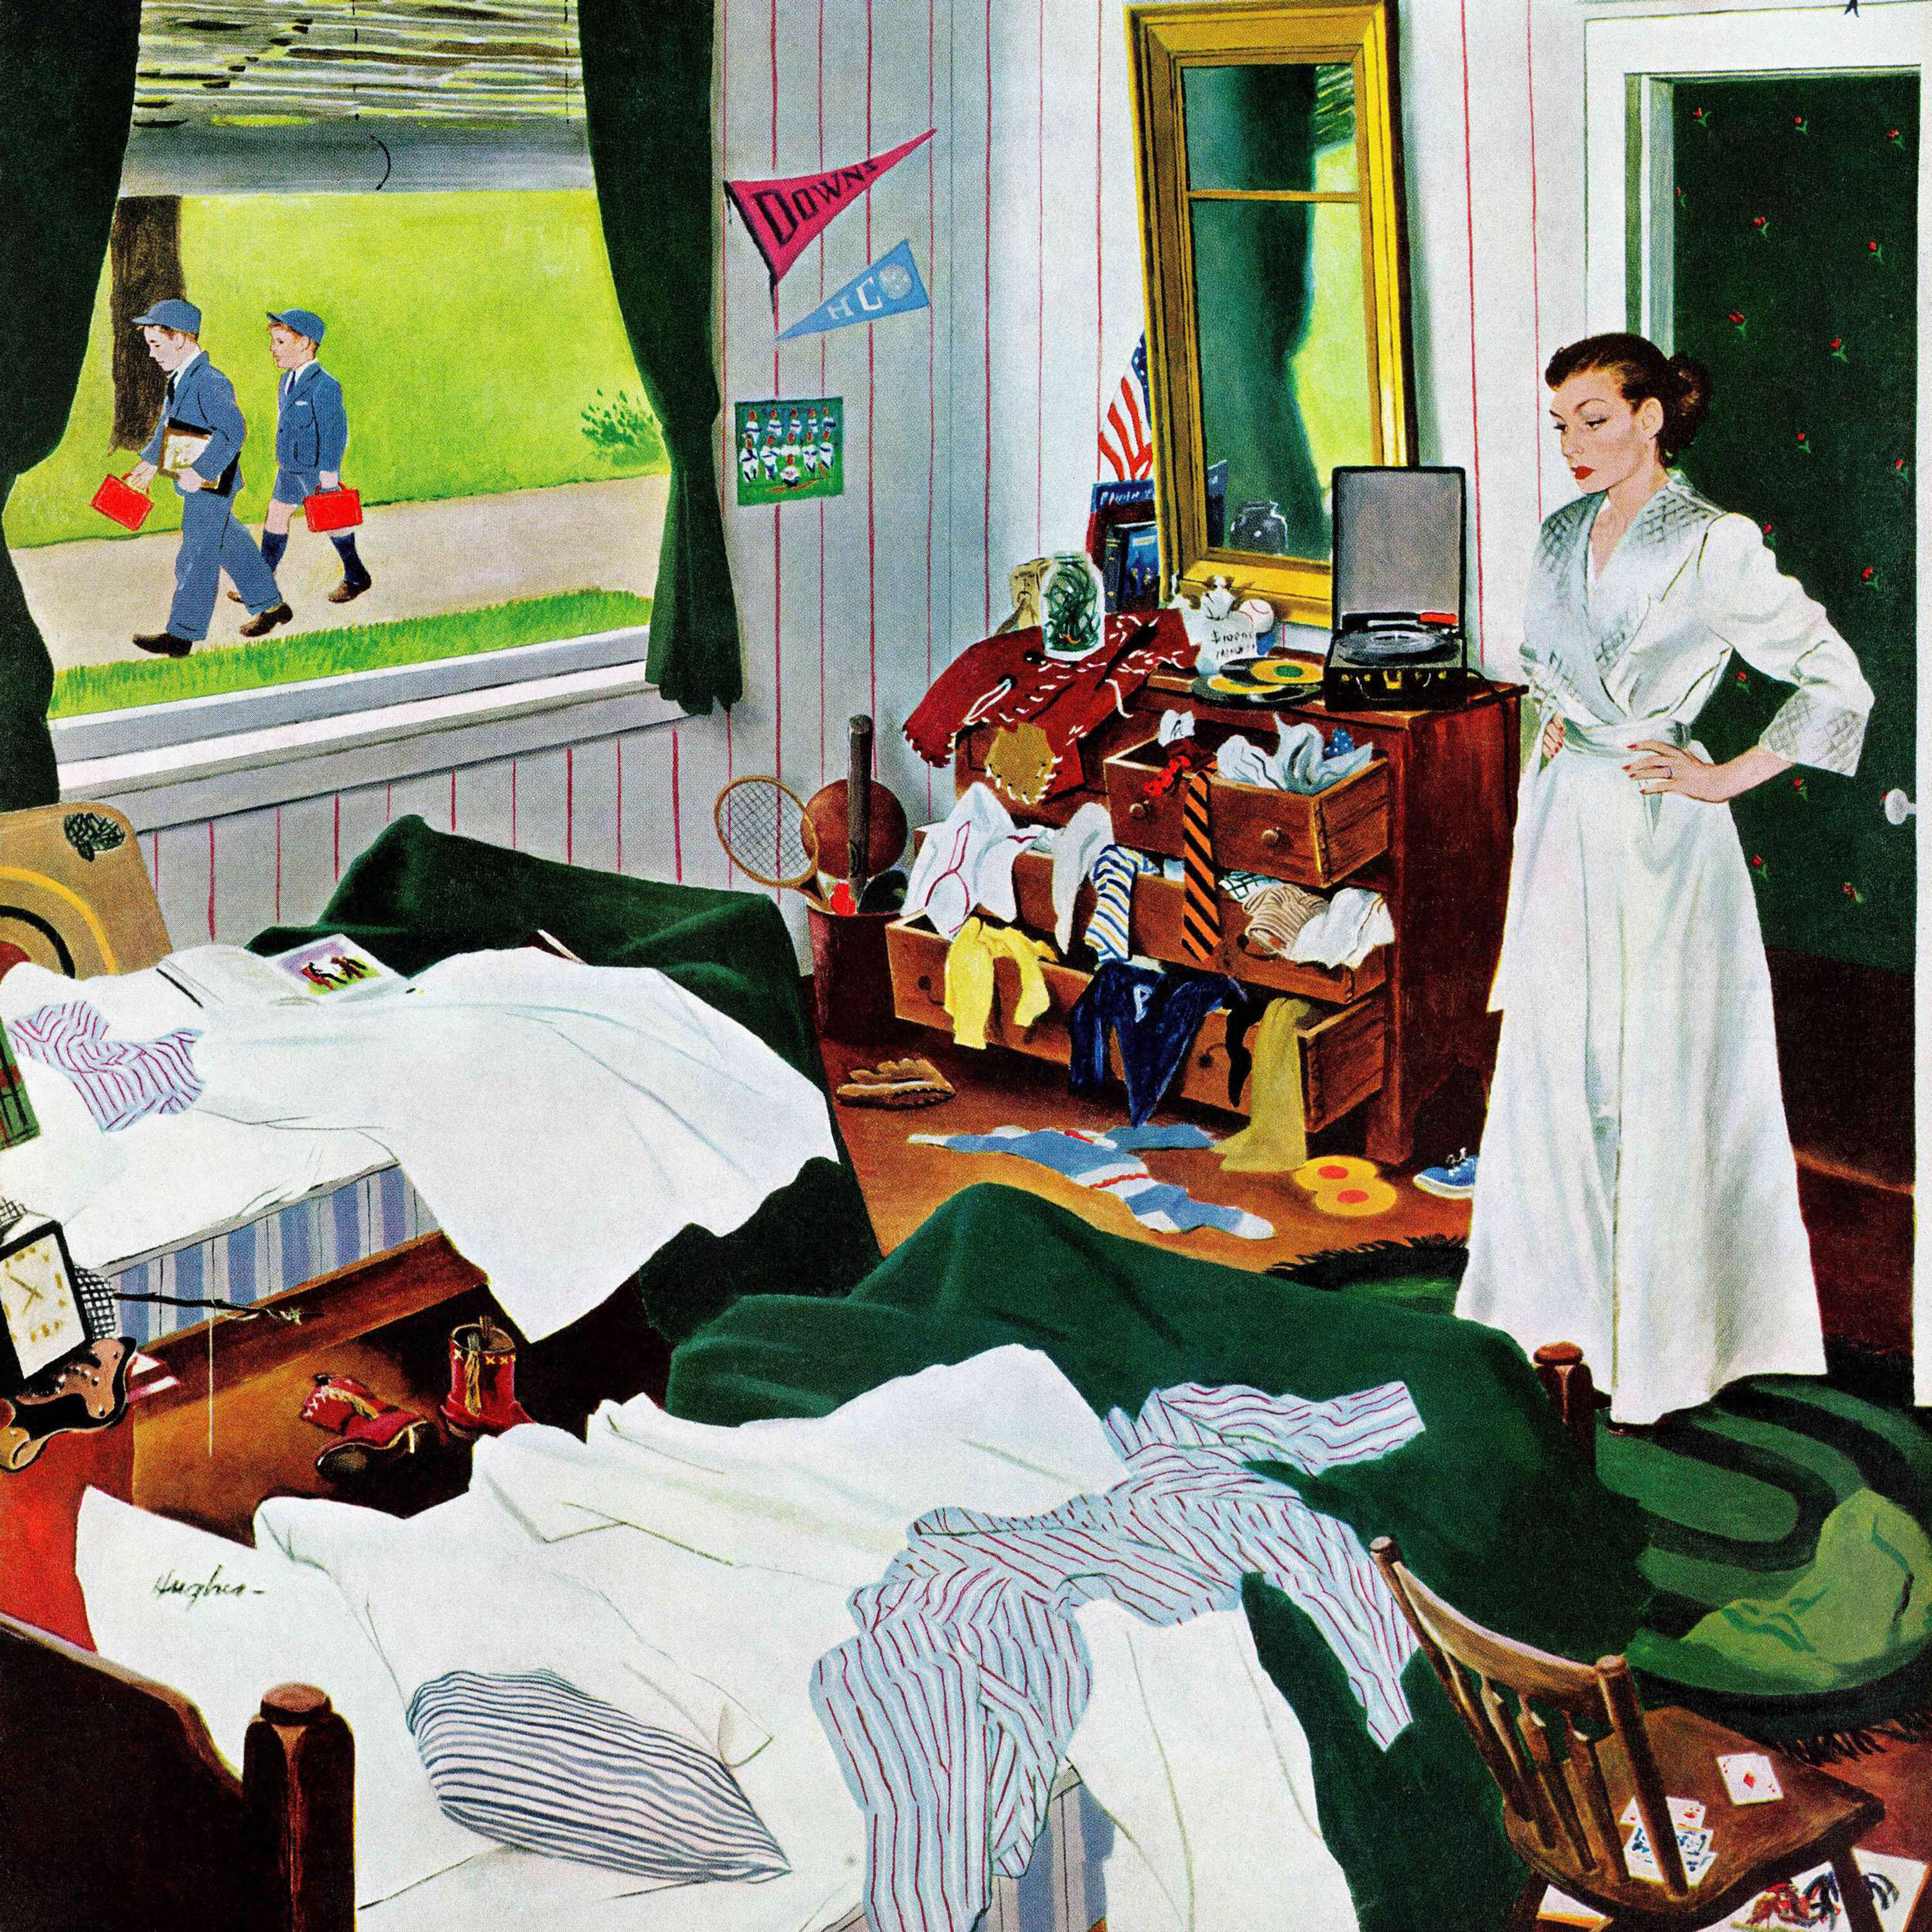 Messy Living Room: Messy Room, Neat Boys By George Hughes Painting Print On